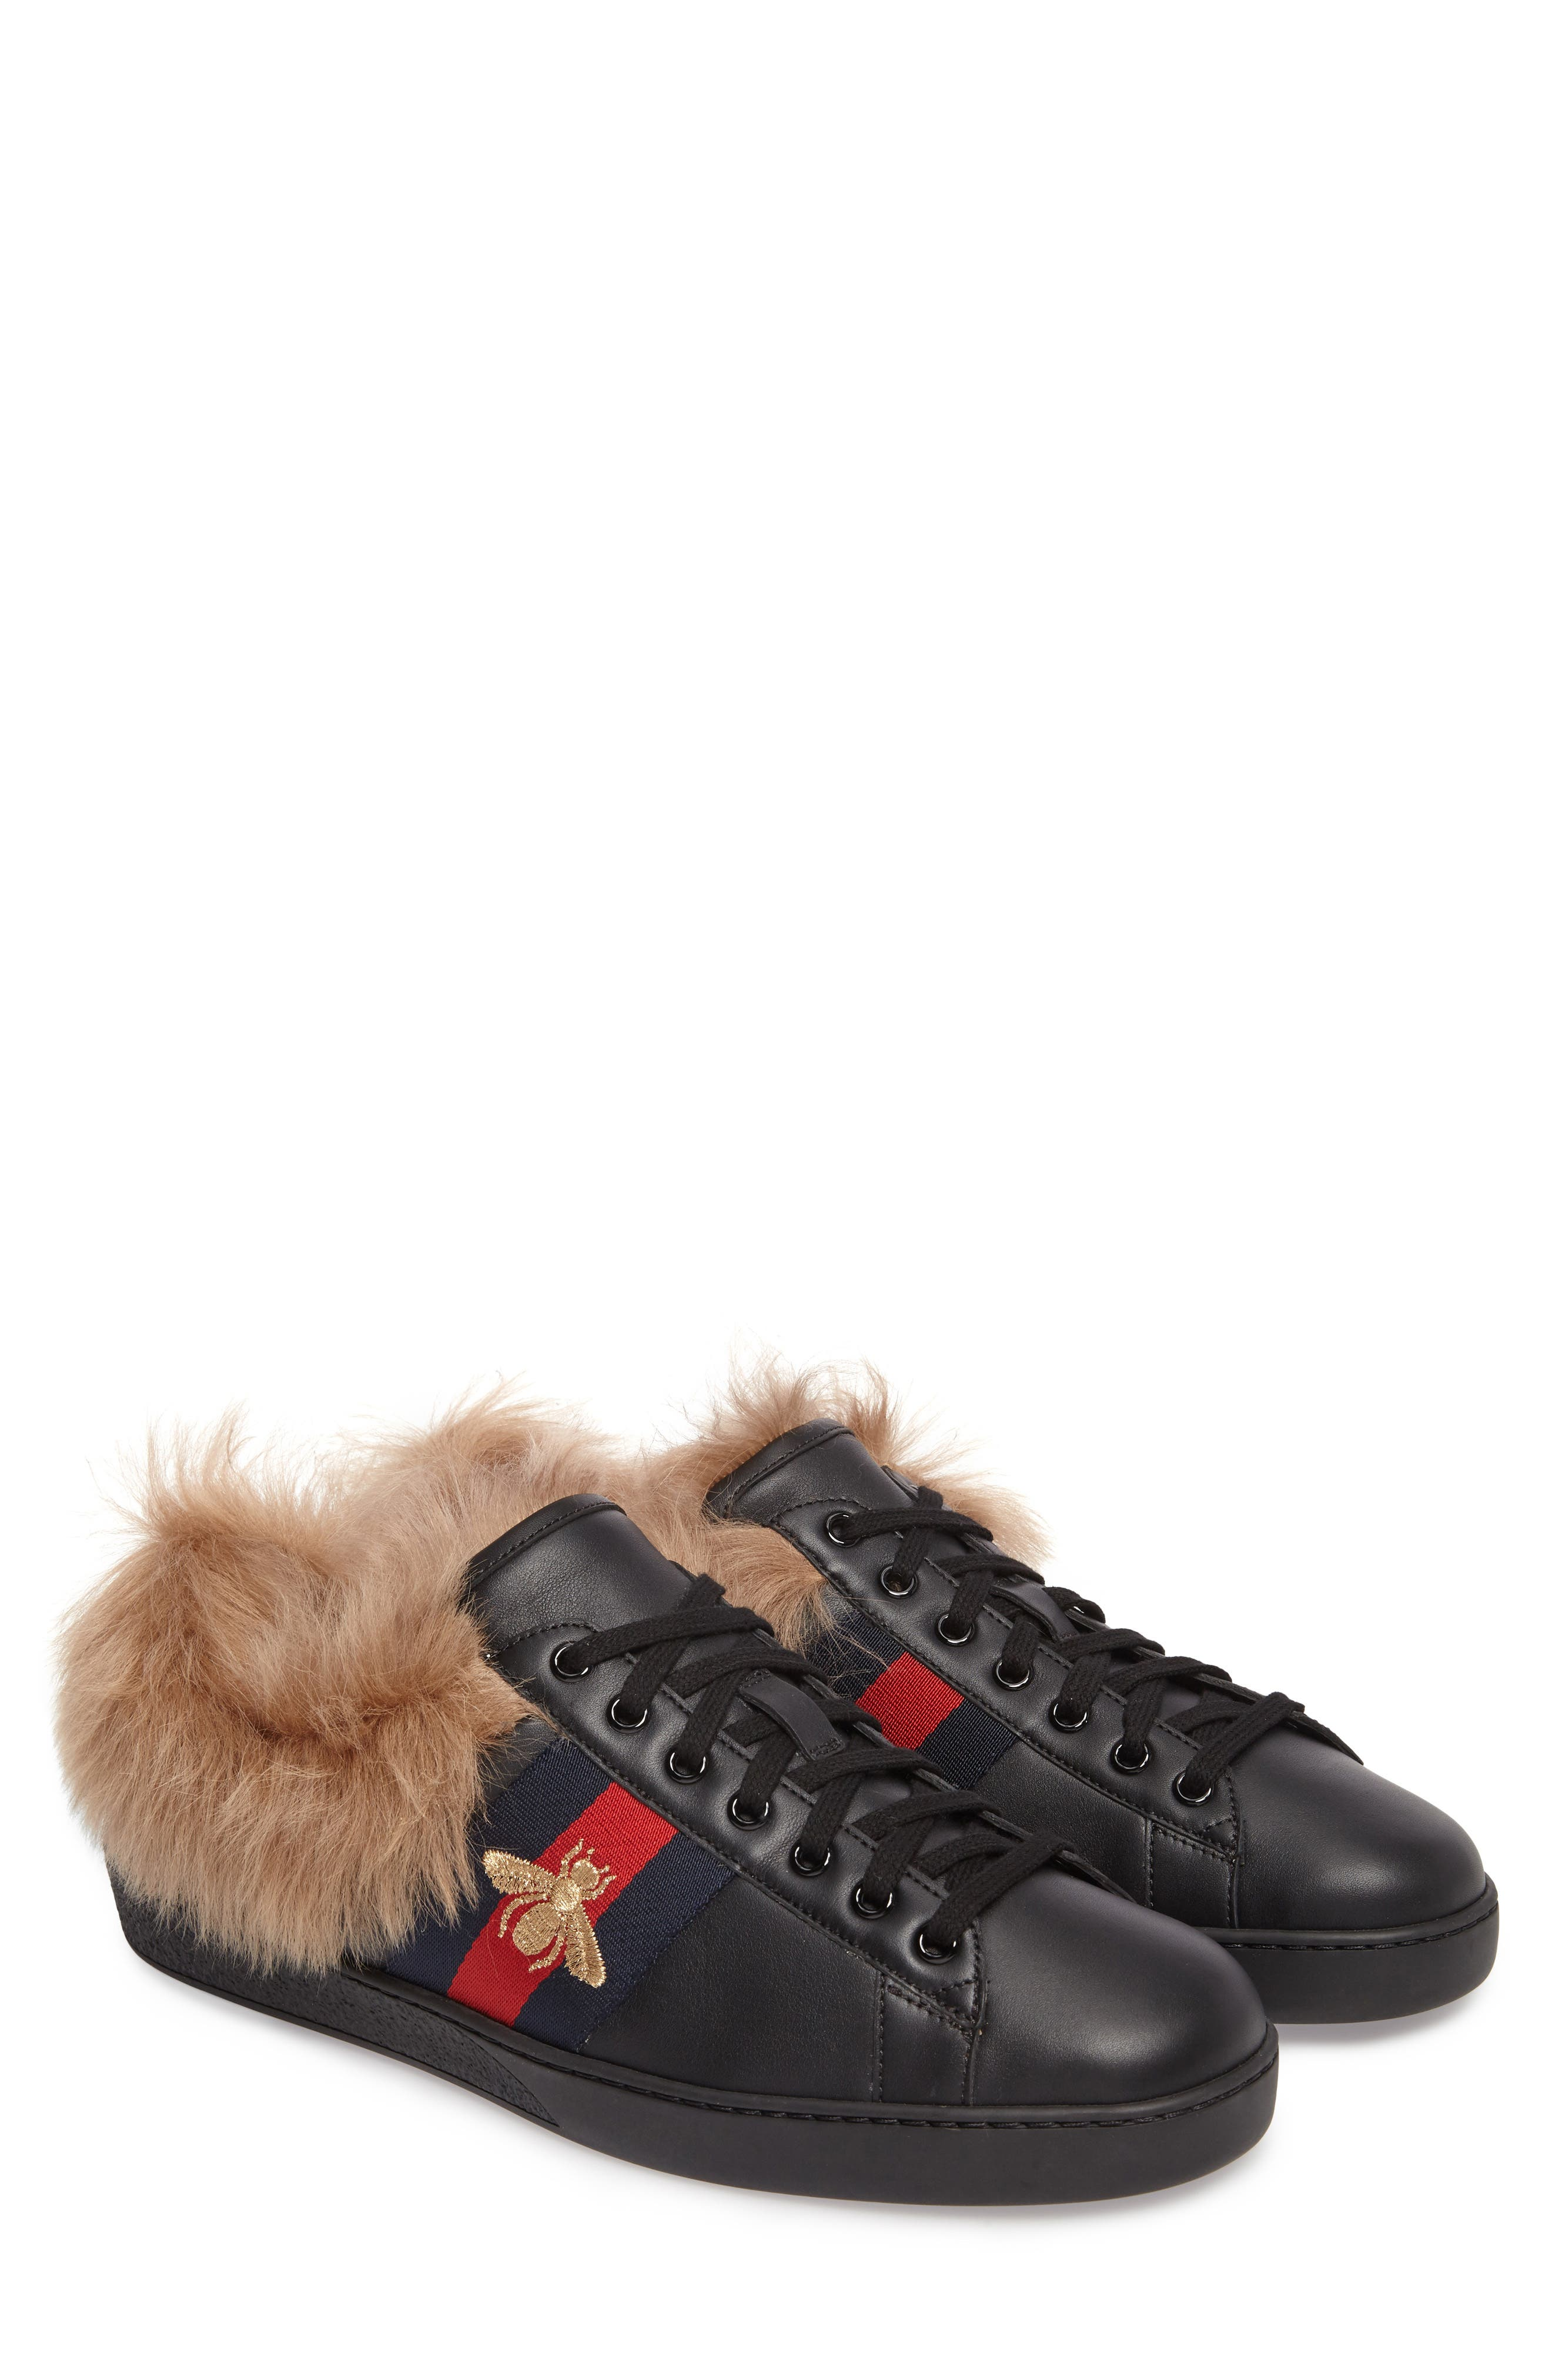 Main Image - Gucci New Ace Genuine Shearling Bee Sneaker (Men)